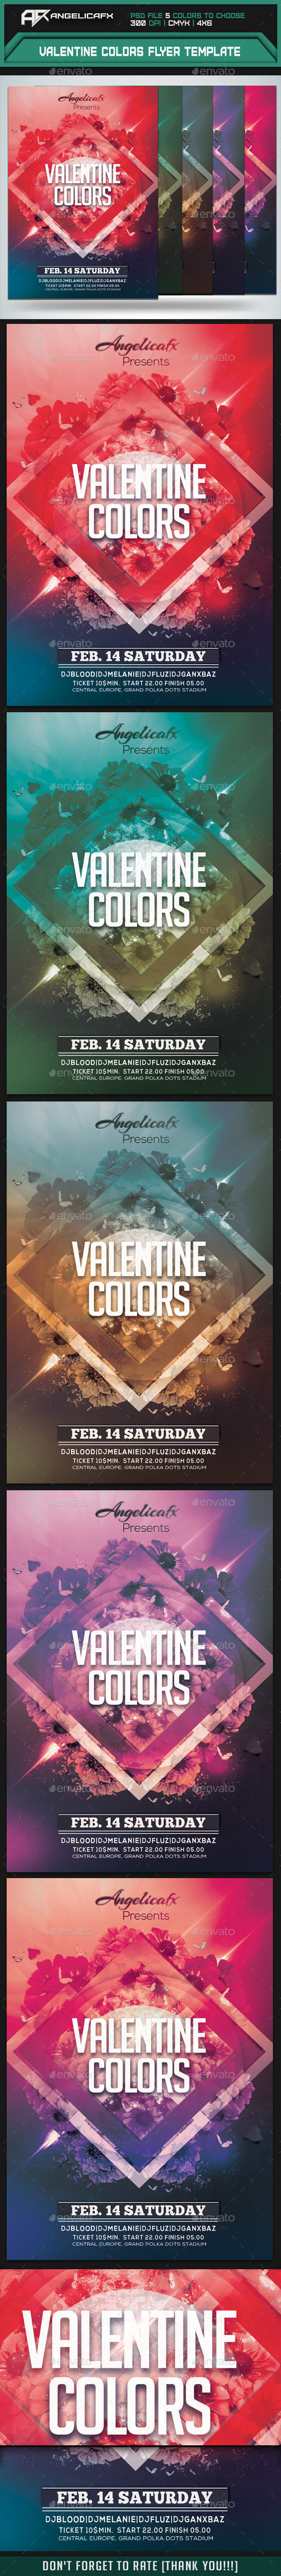 Valentine Colors Flyer Template